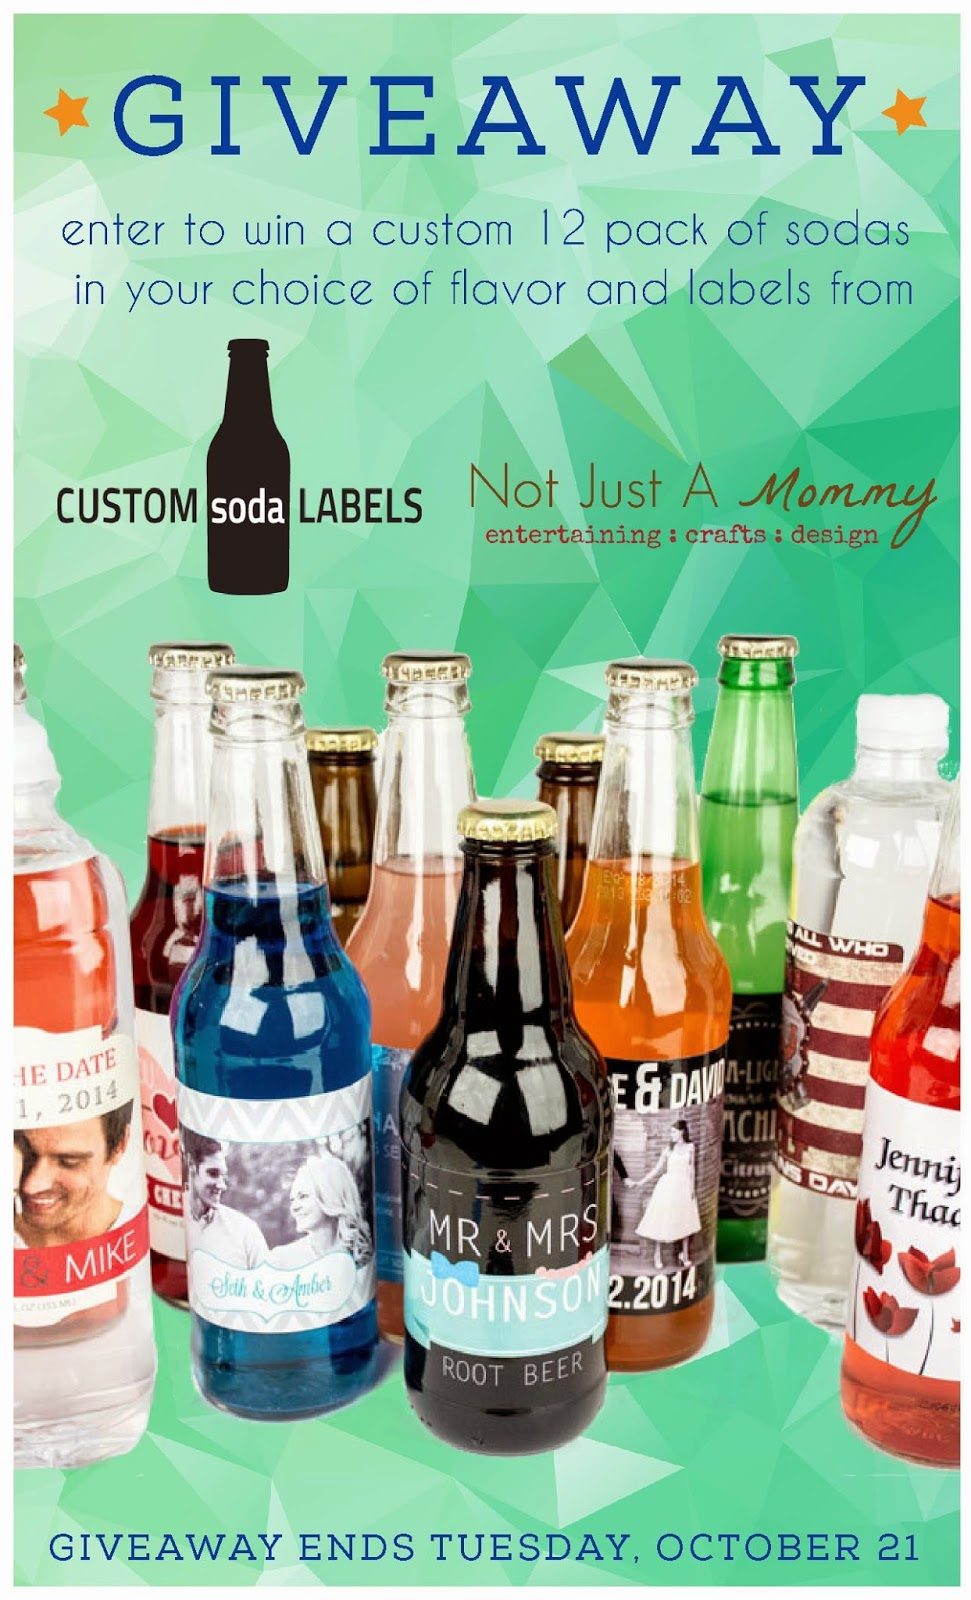 Enter to win a 12-pack of @CustomSoda in your choice of label and flavor; giveaway ends October 21